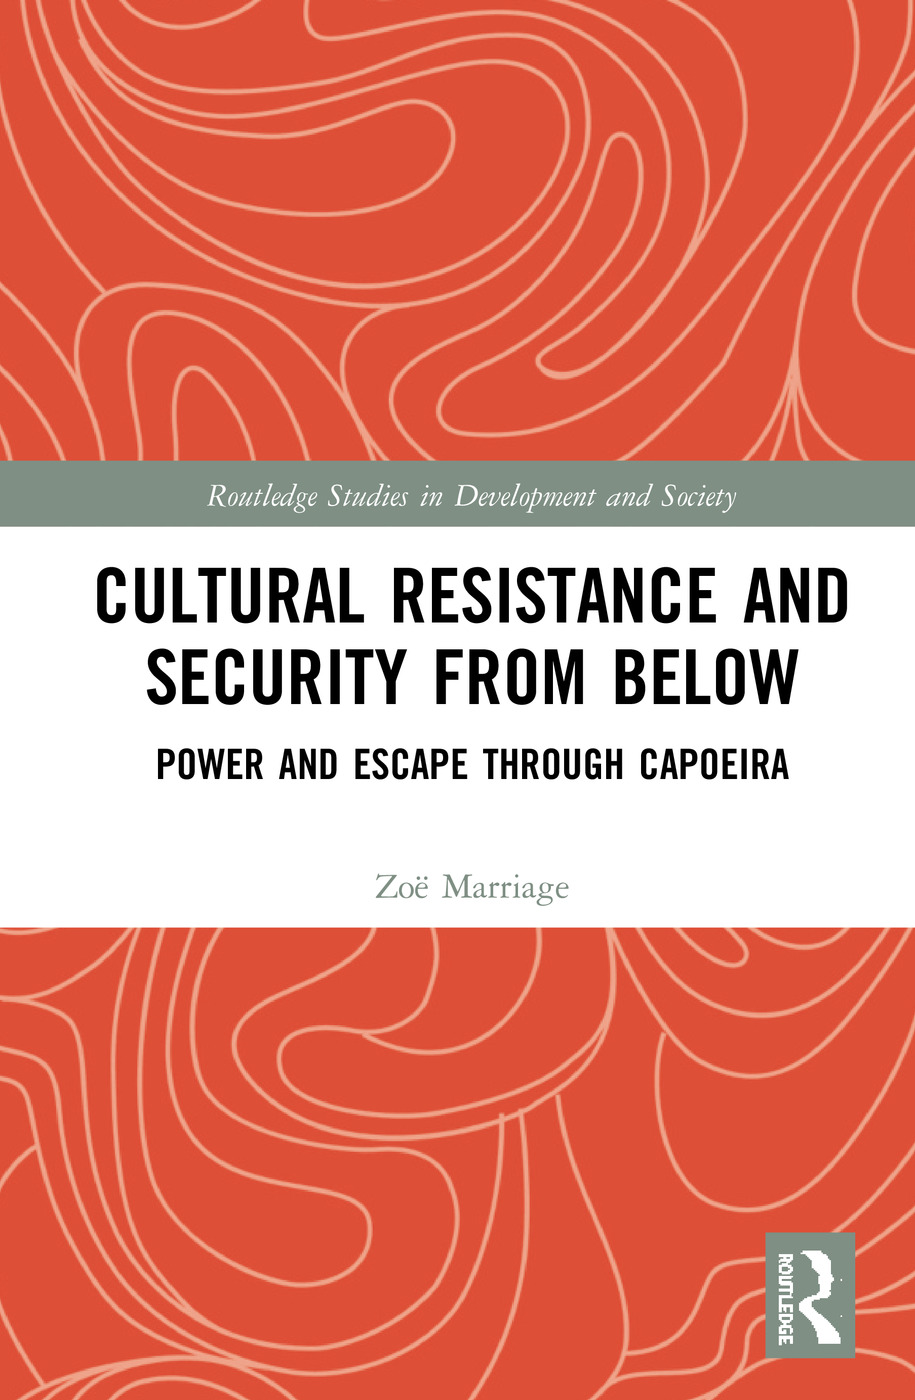 Cultural Resistance and Security from Below: Power and Escape through Capoeira book cover